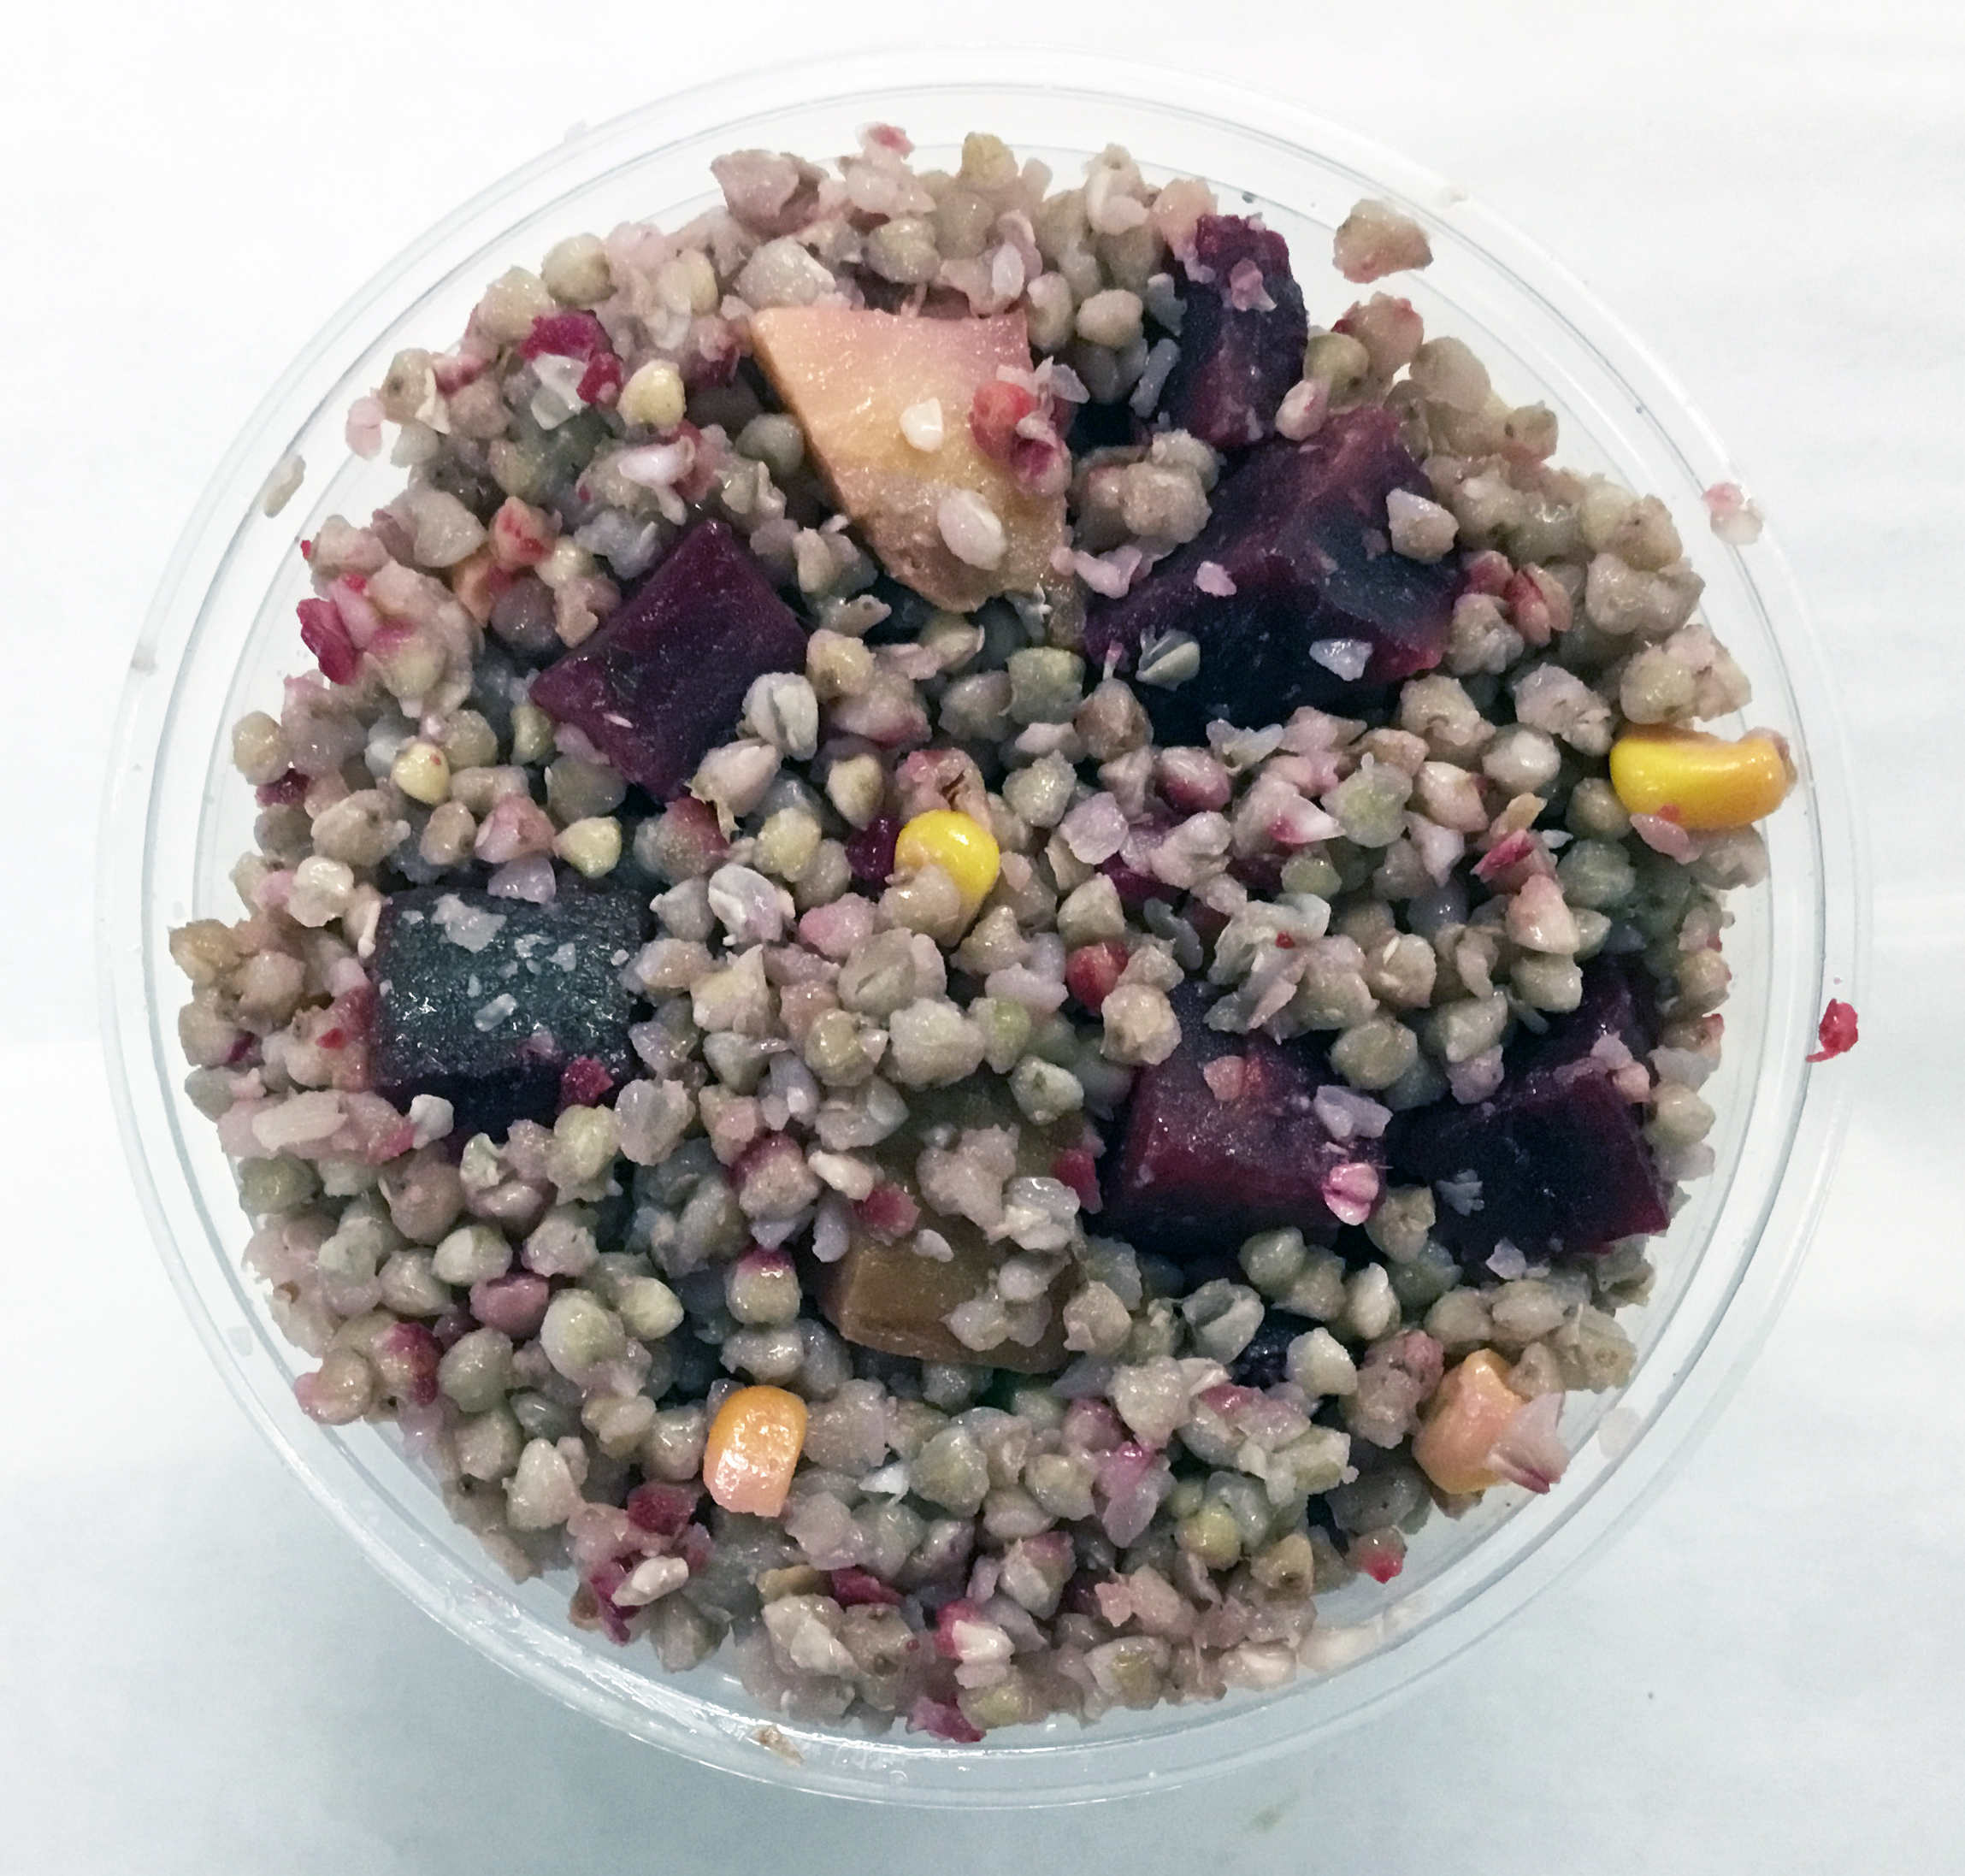 Buckwheat with beets, celery root, garlic, corn, brown rice vinegar and olive oil.